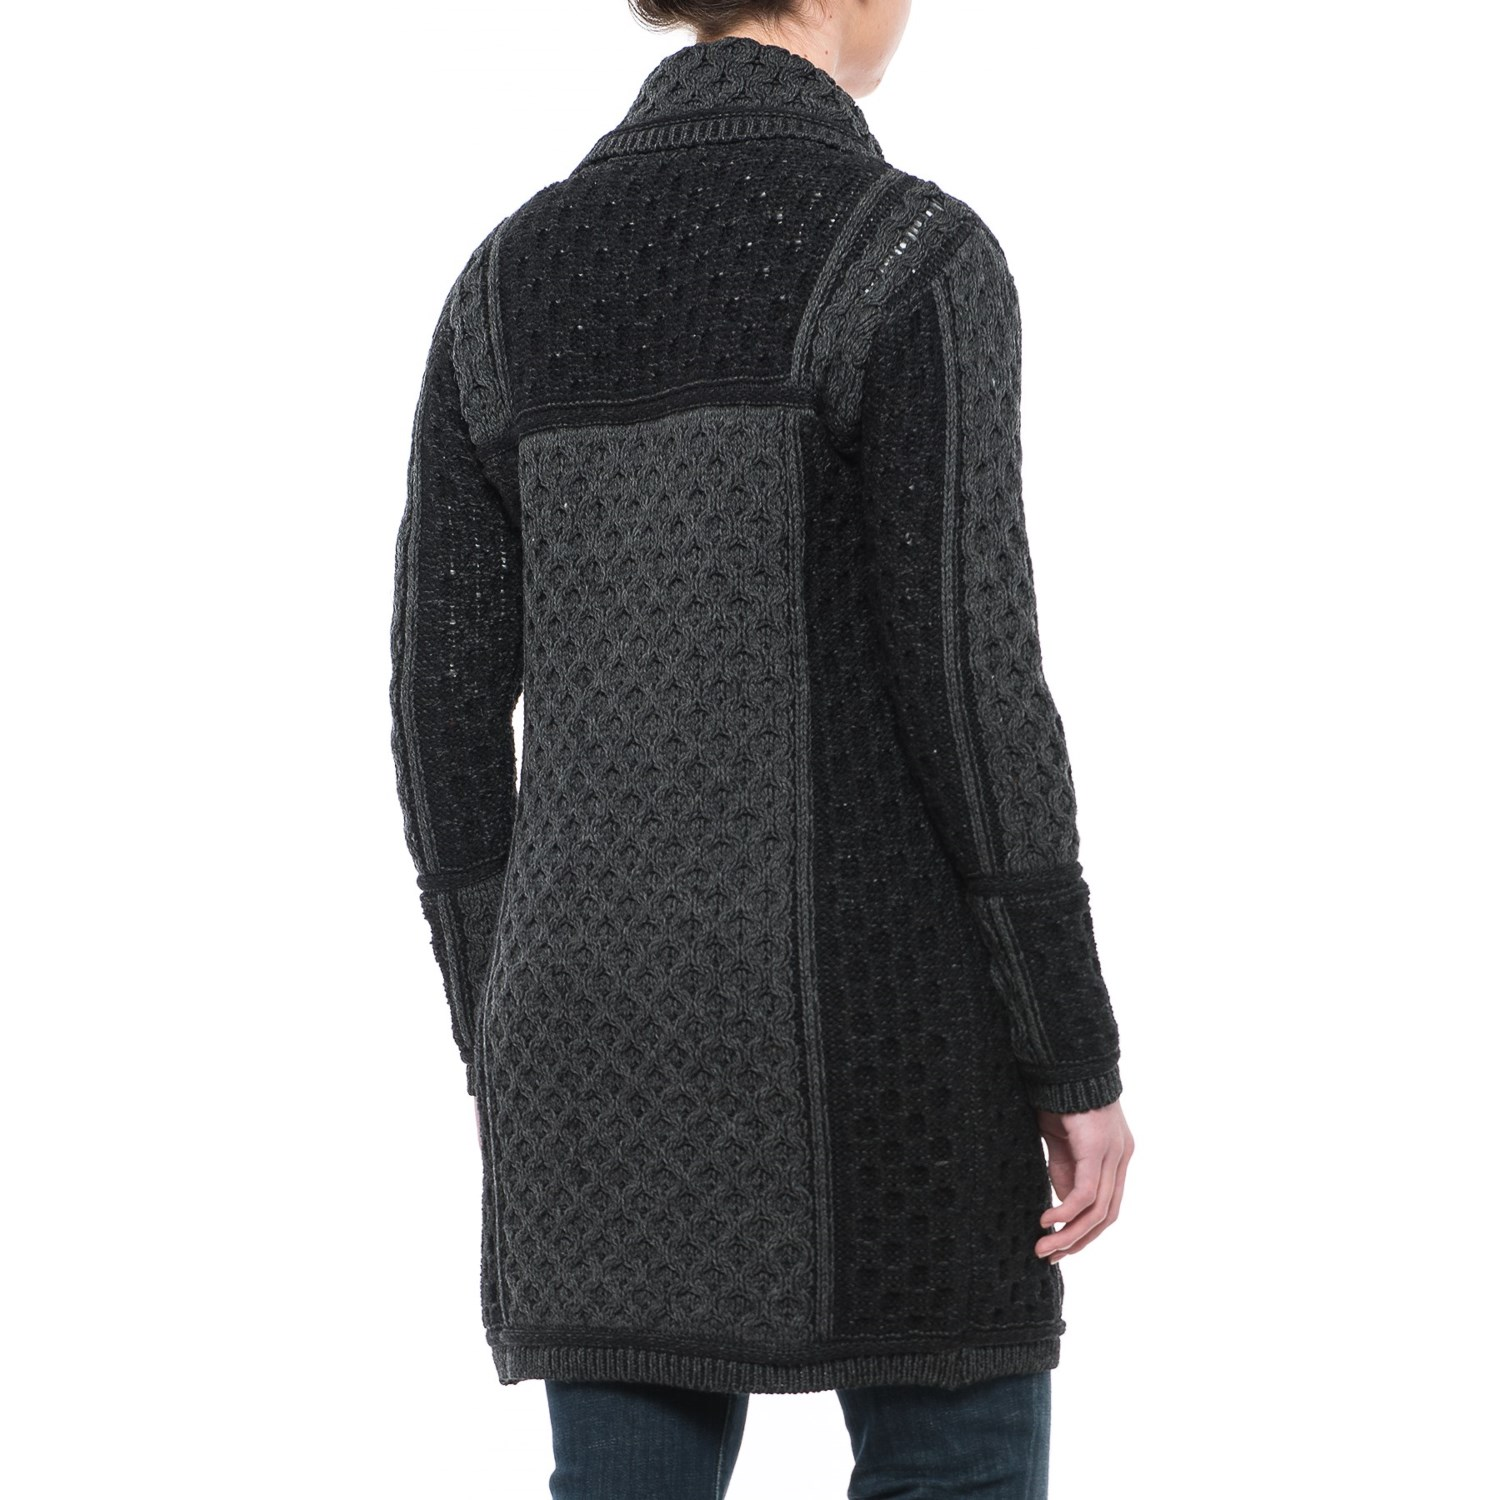 Aran Craft One-Button Plated Cardigan Sweater (For Women) - Save 55%